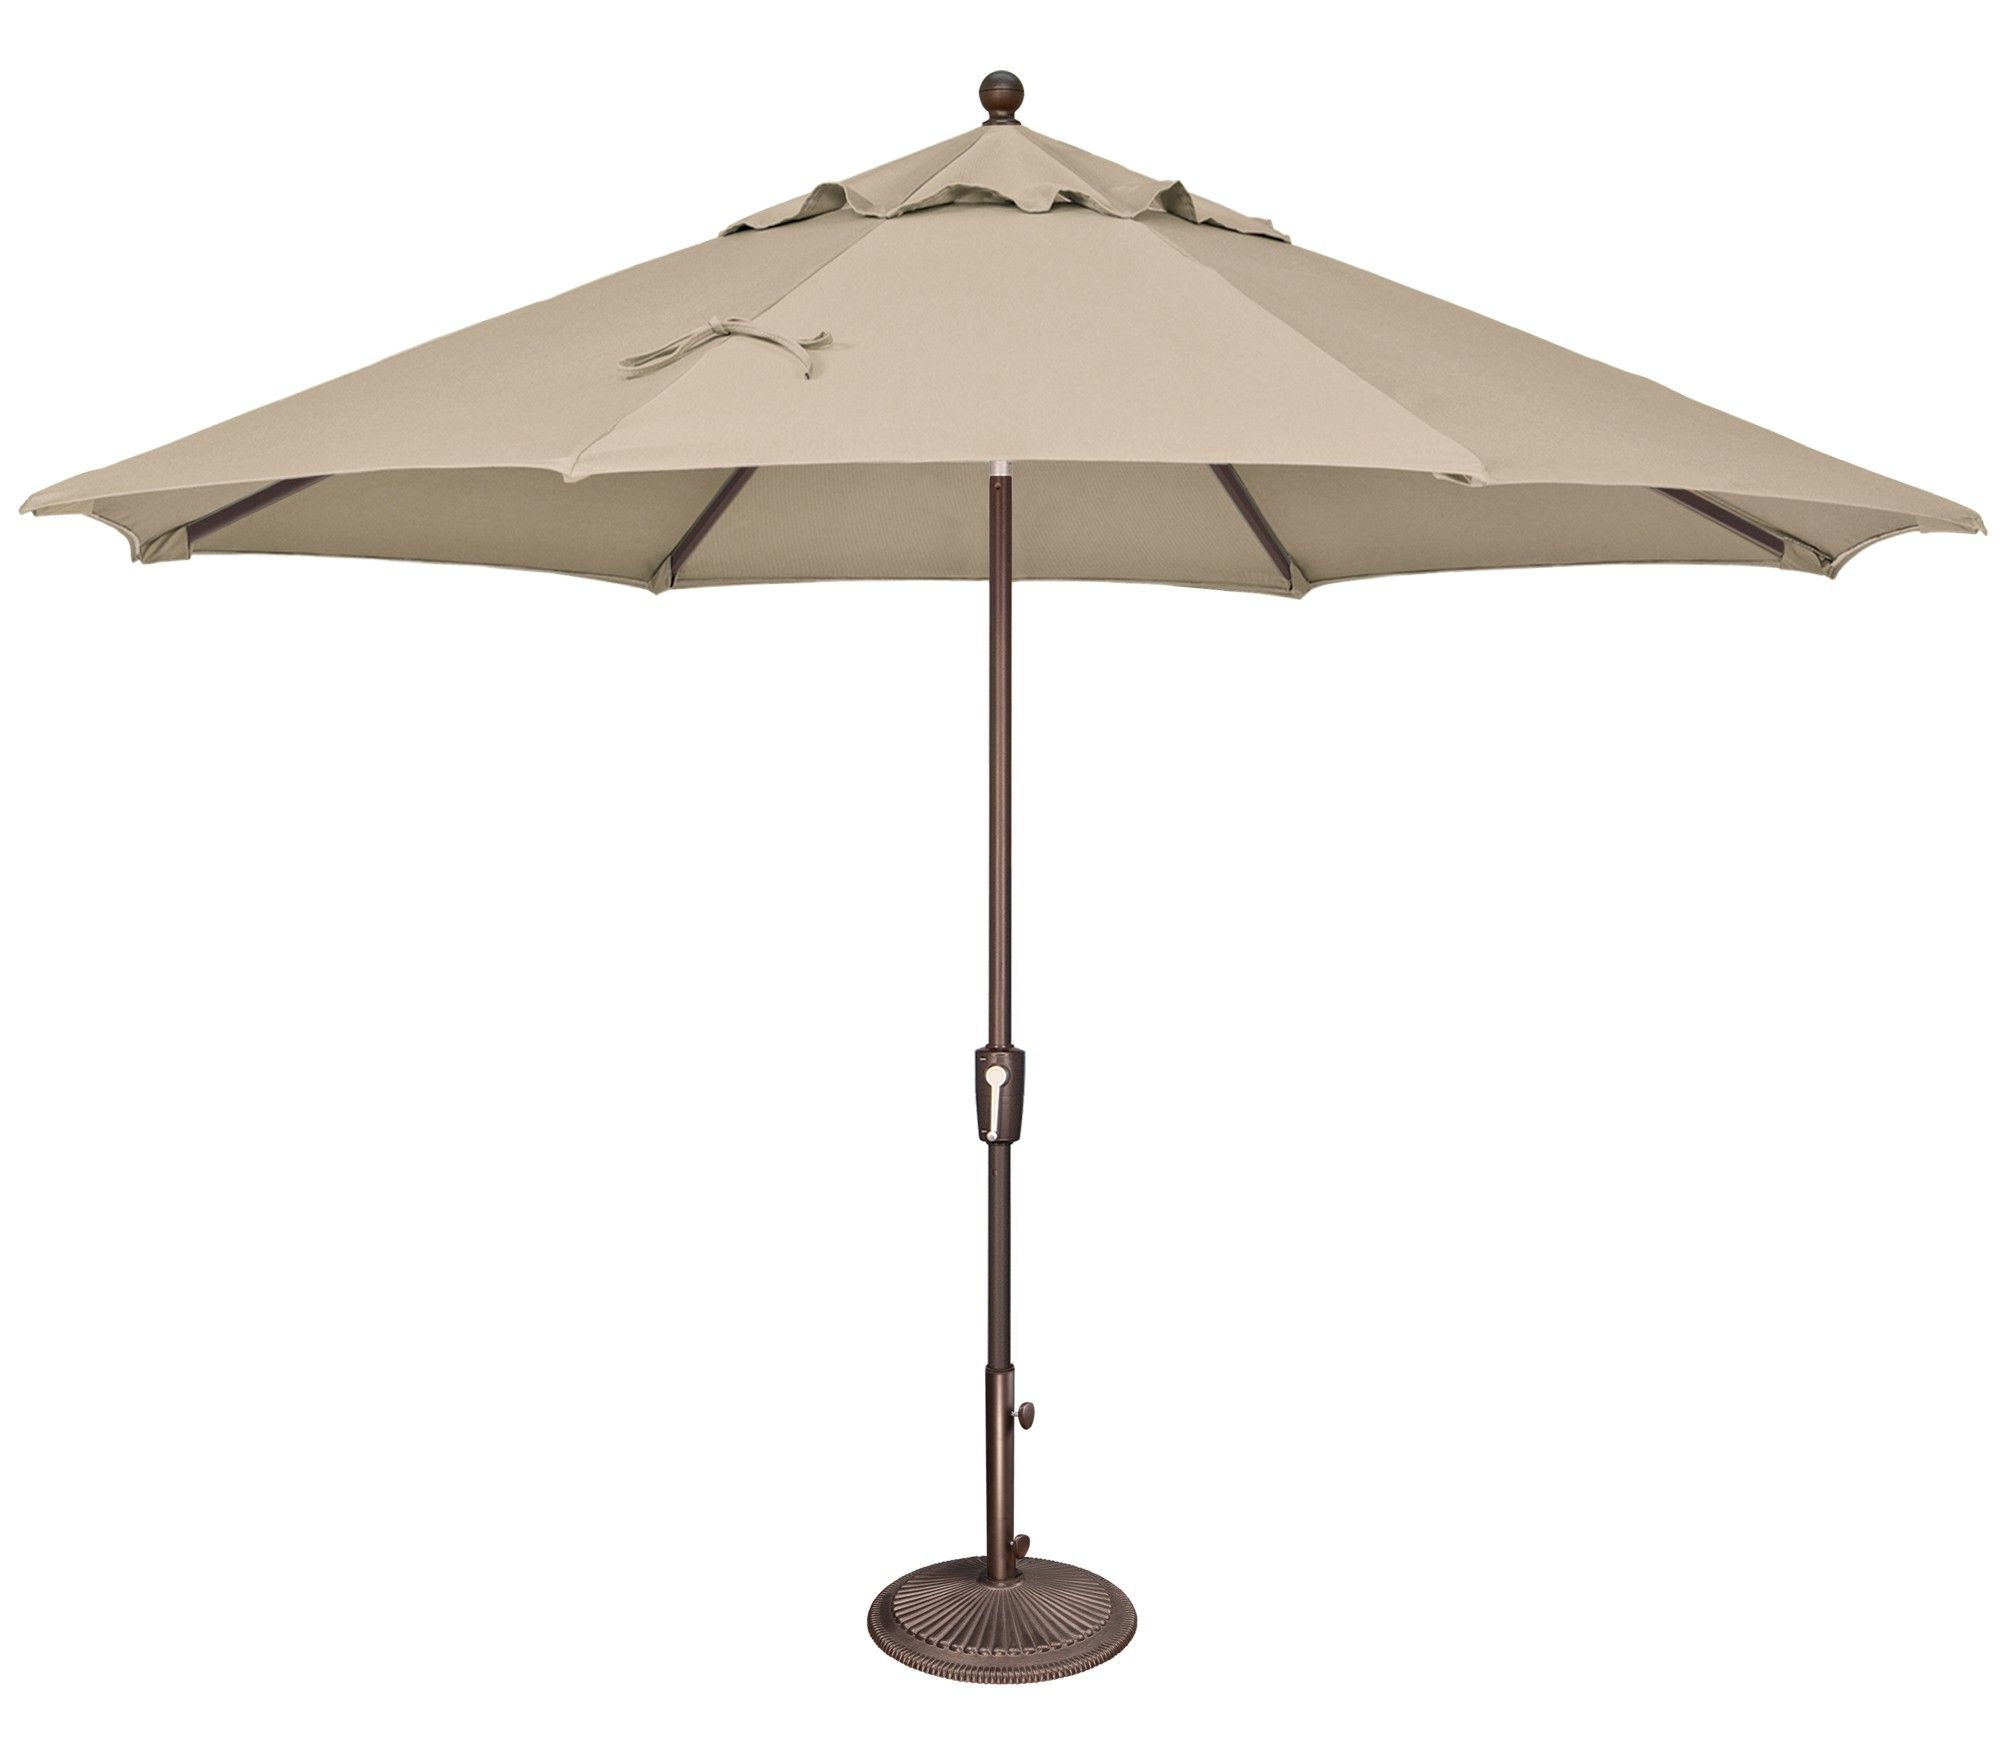 Trendy With These Professional Tips On Choosing An Outdoor Umbrella, Relief In Voss Cantilever Sunbrella Umbrellas (View 9 of 20)